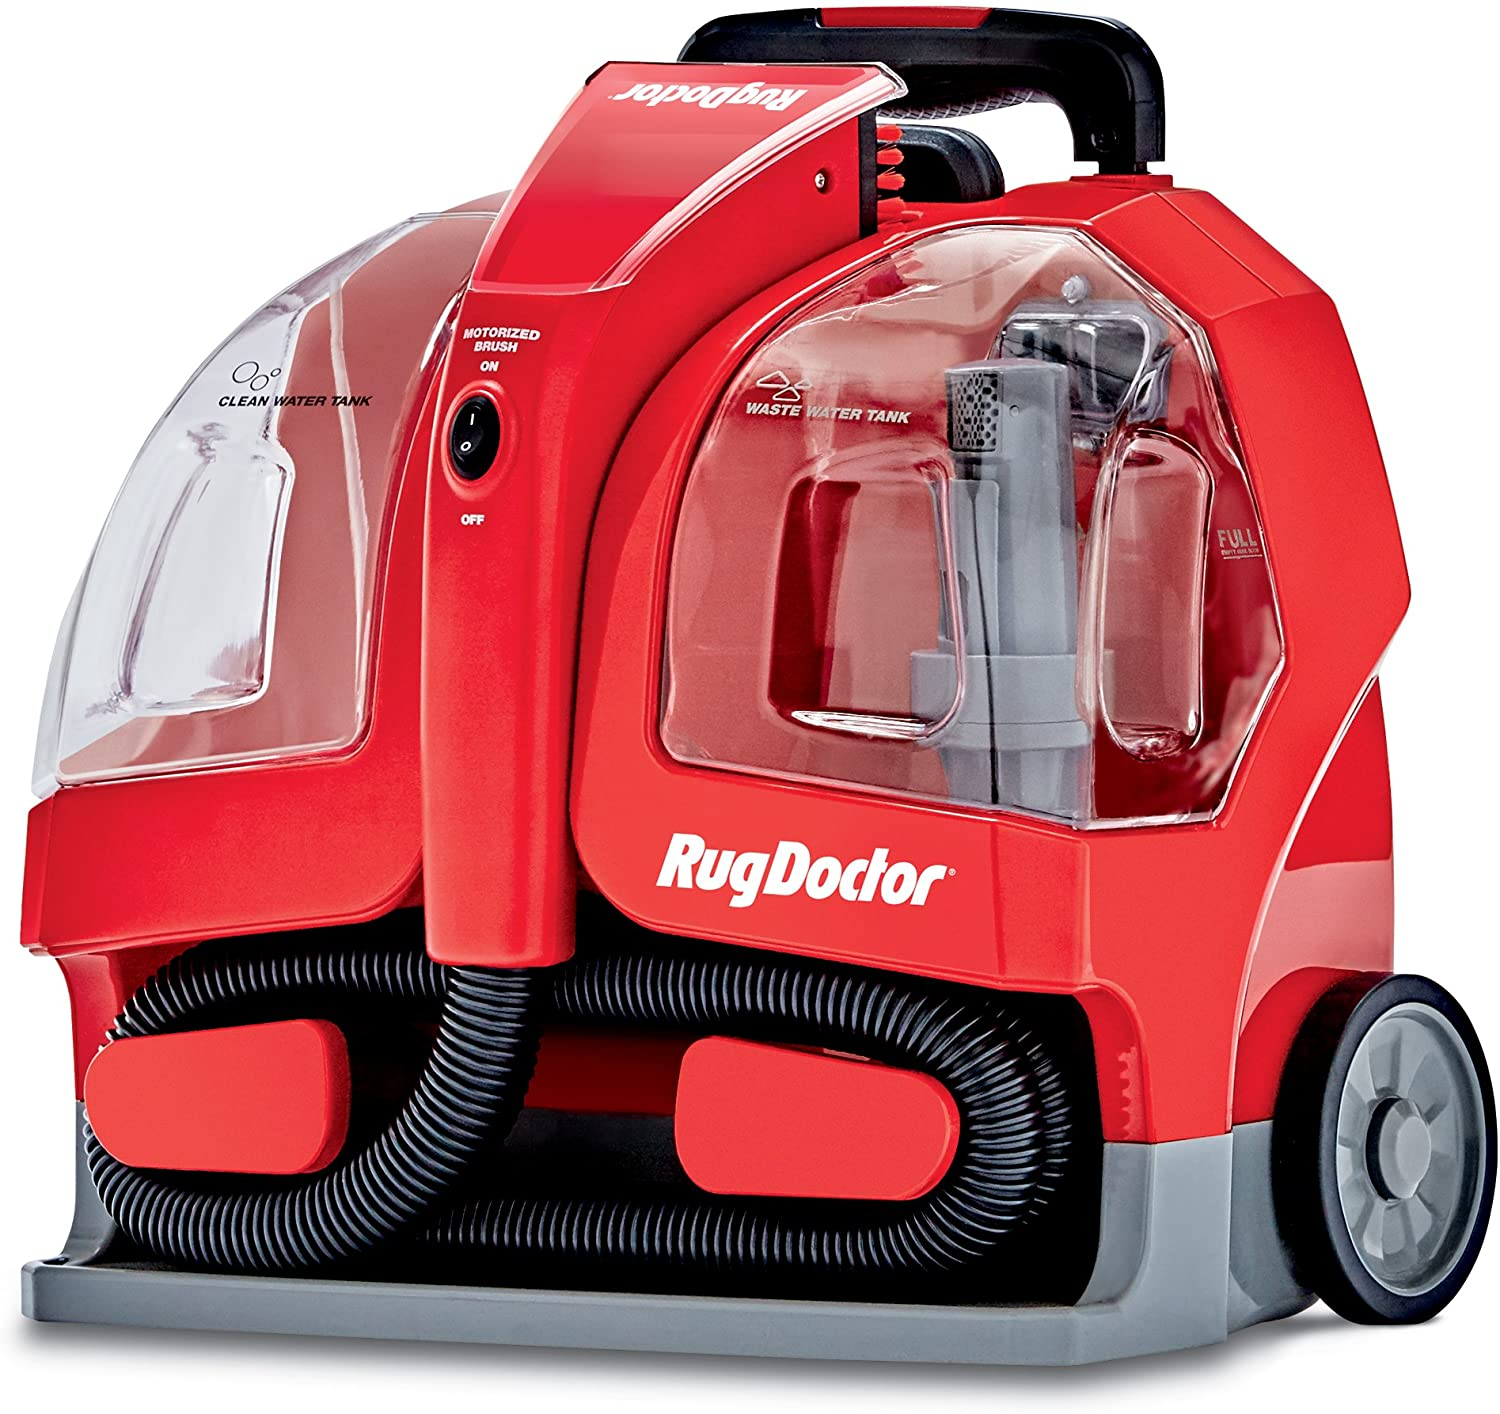 Top 10 Best Carpet Cleaning Machine For Pet Urine of 2021